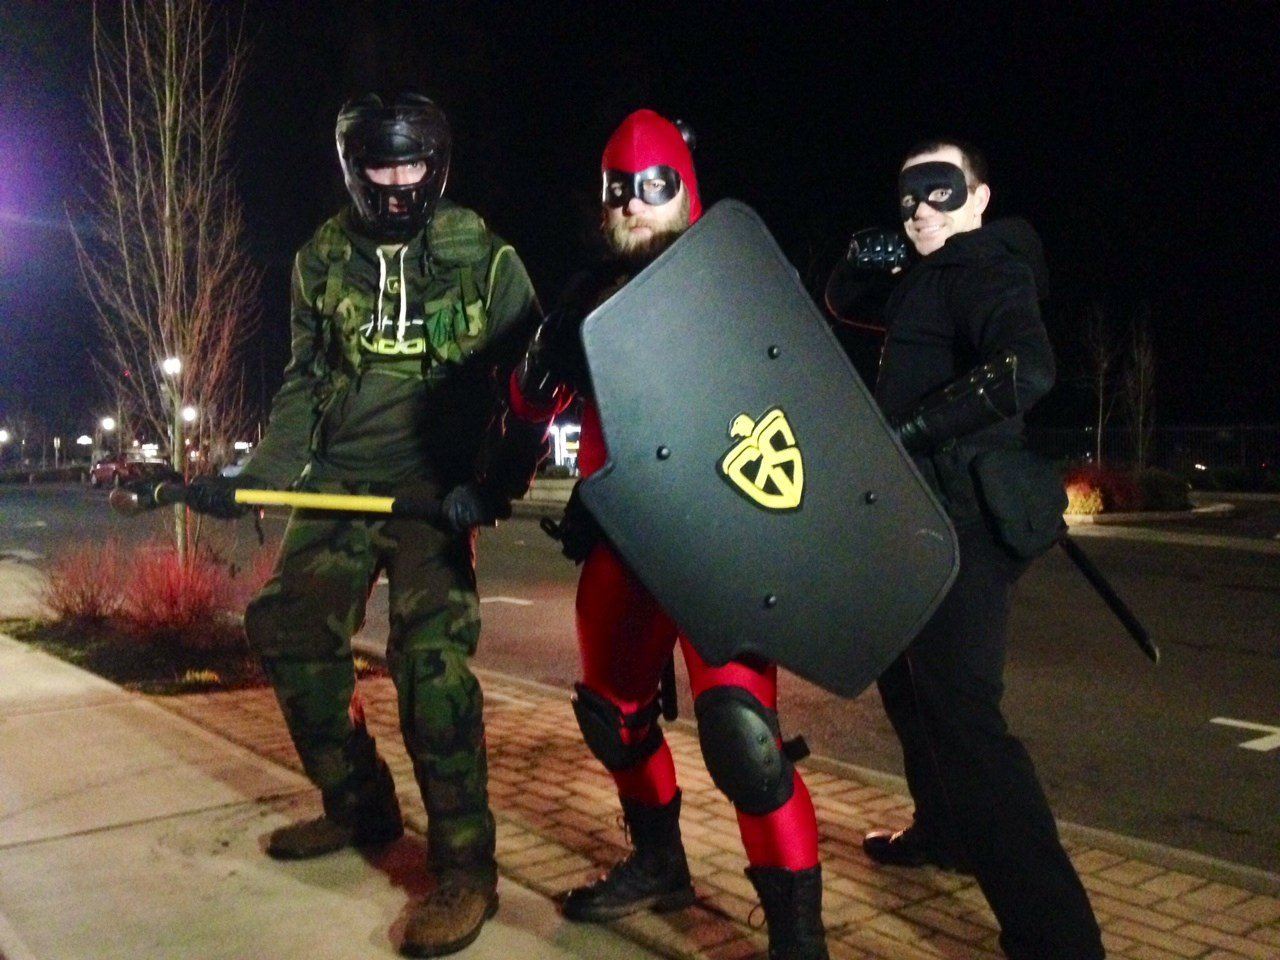 Jericho, Guardian Shield and Sanctuary, on patrol in Canby. (Photo: KPTV)